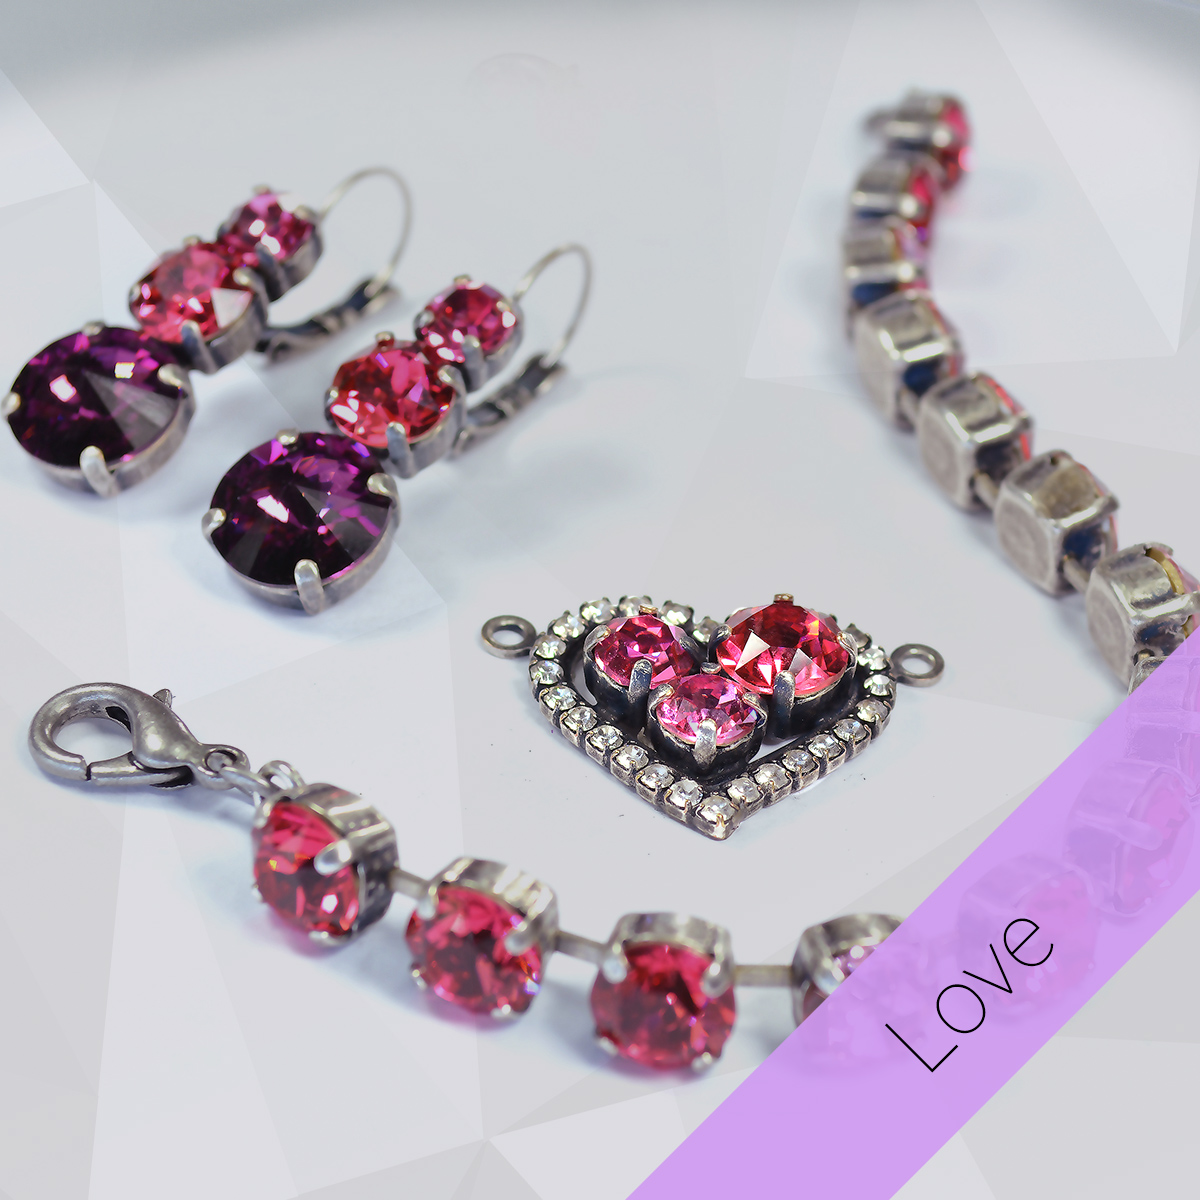 Love Jewelry Bases collections